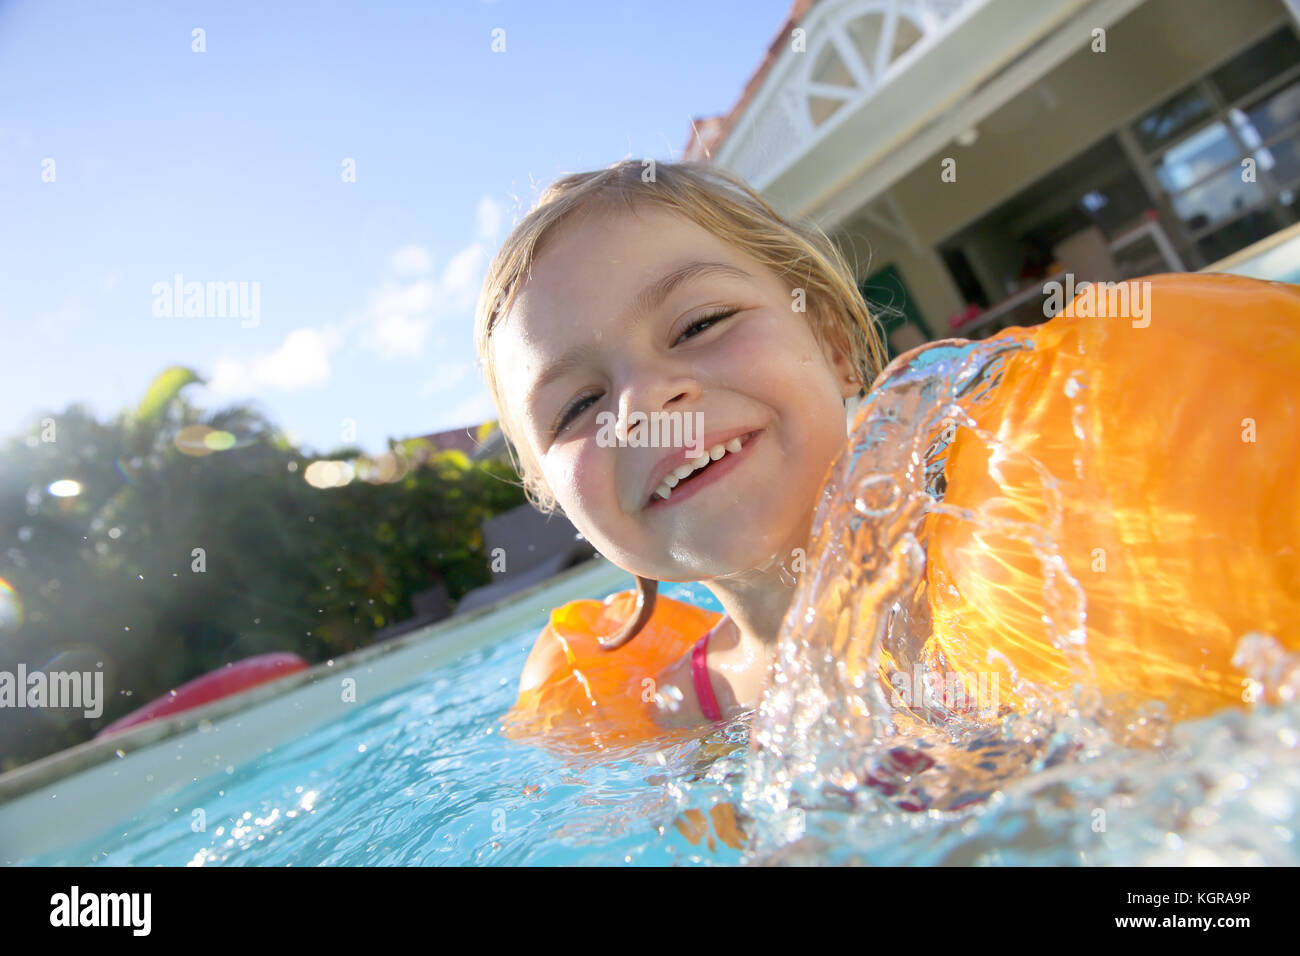 Cheerful 4-year-old girl playing in pool - Stock Image